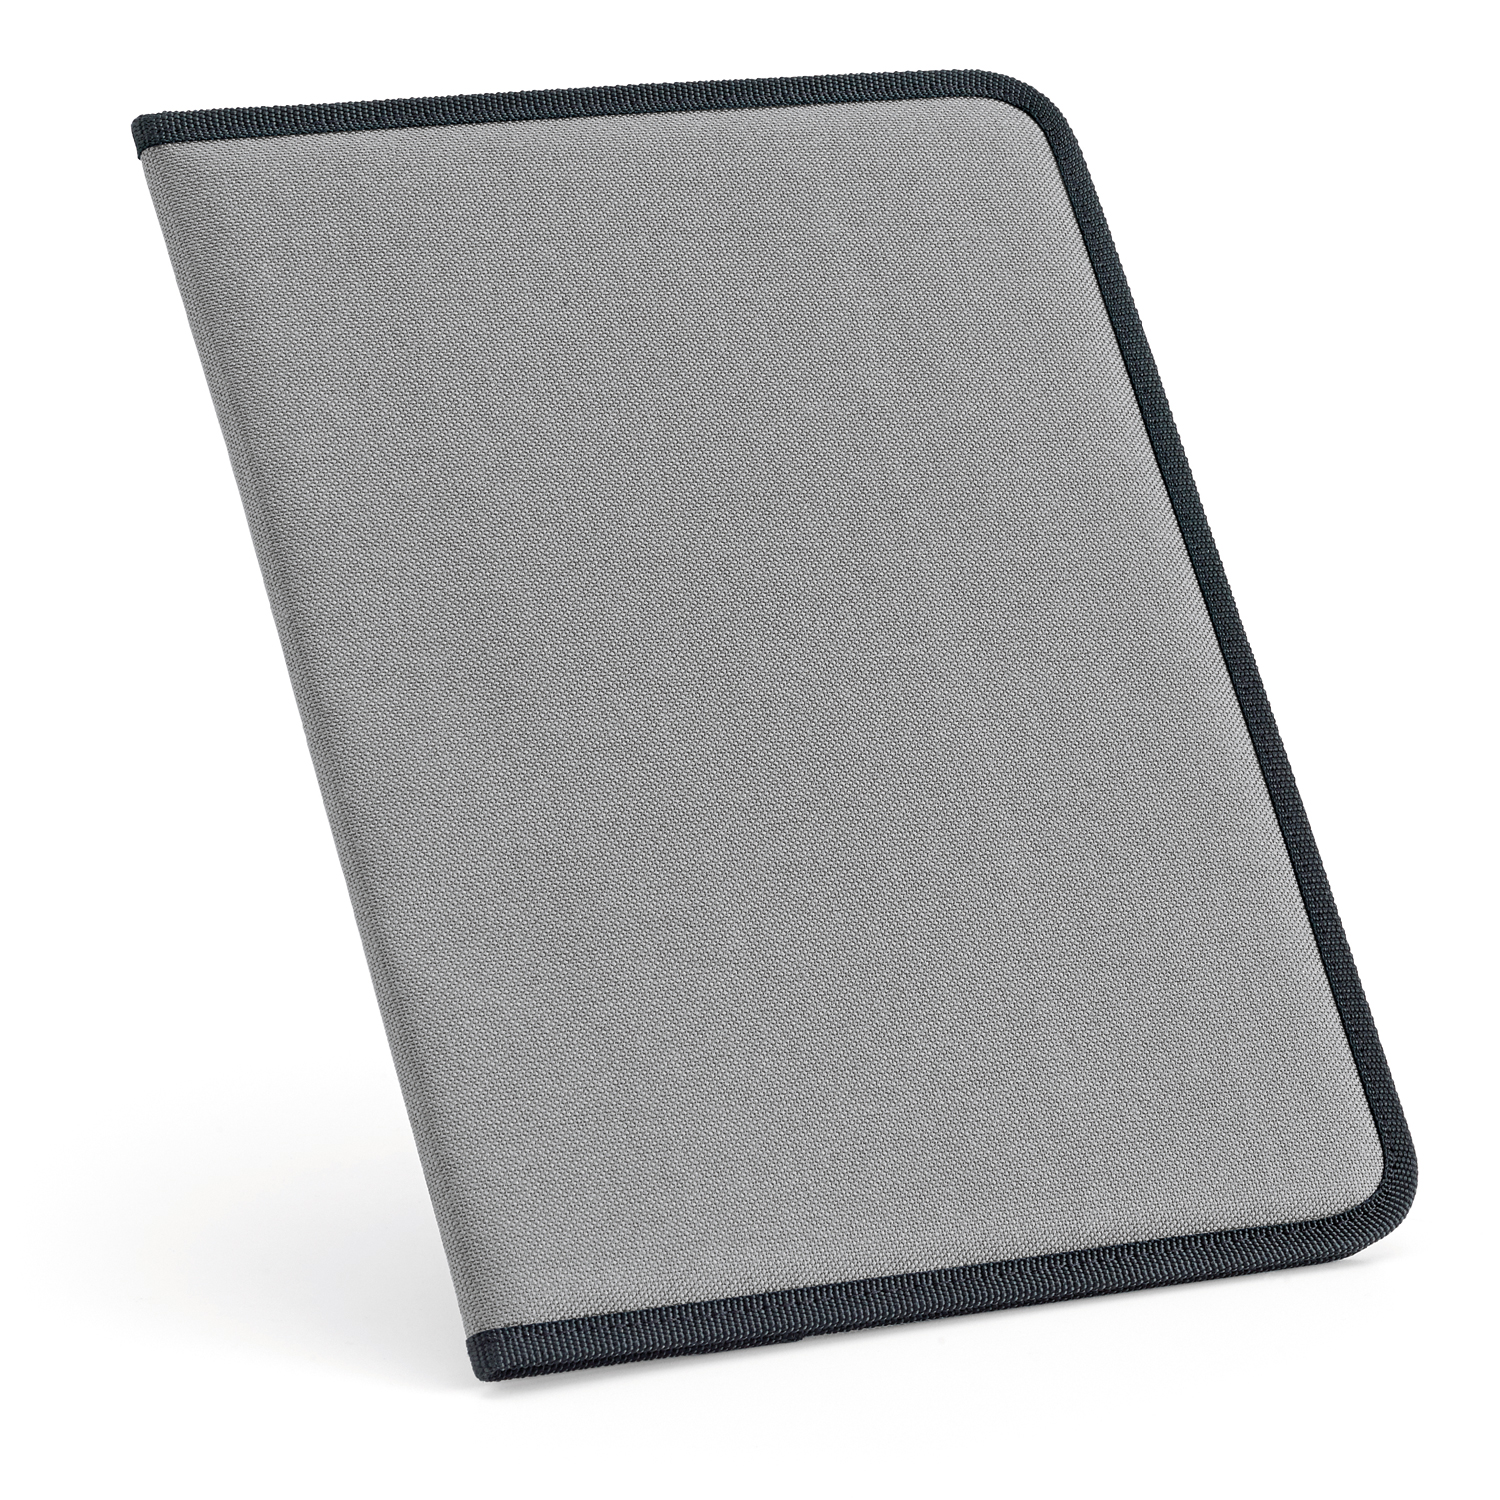 Folder 034 (A4 Document folder with 20 sheets inside) - hmi62034-03 (Grey)